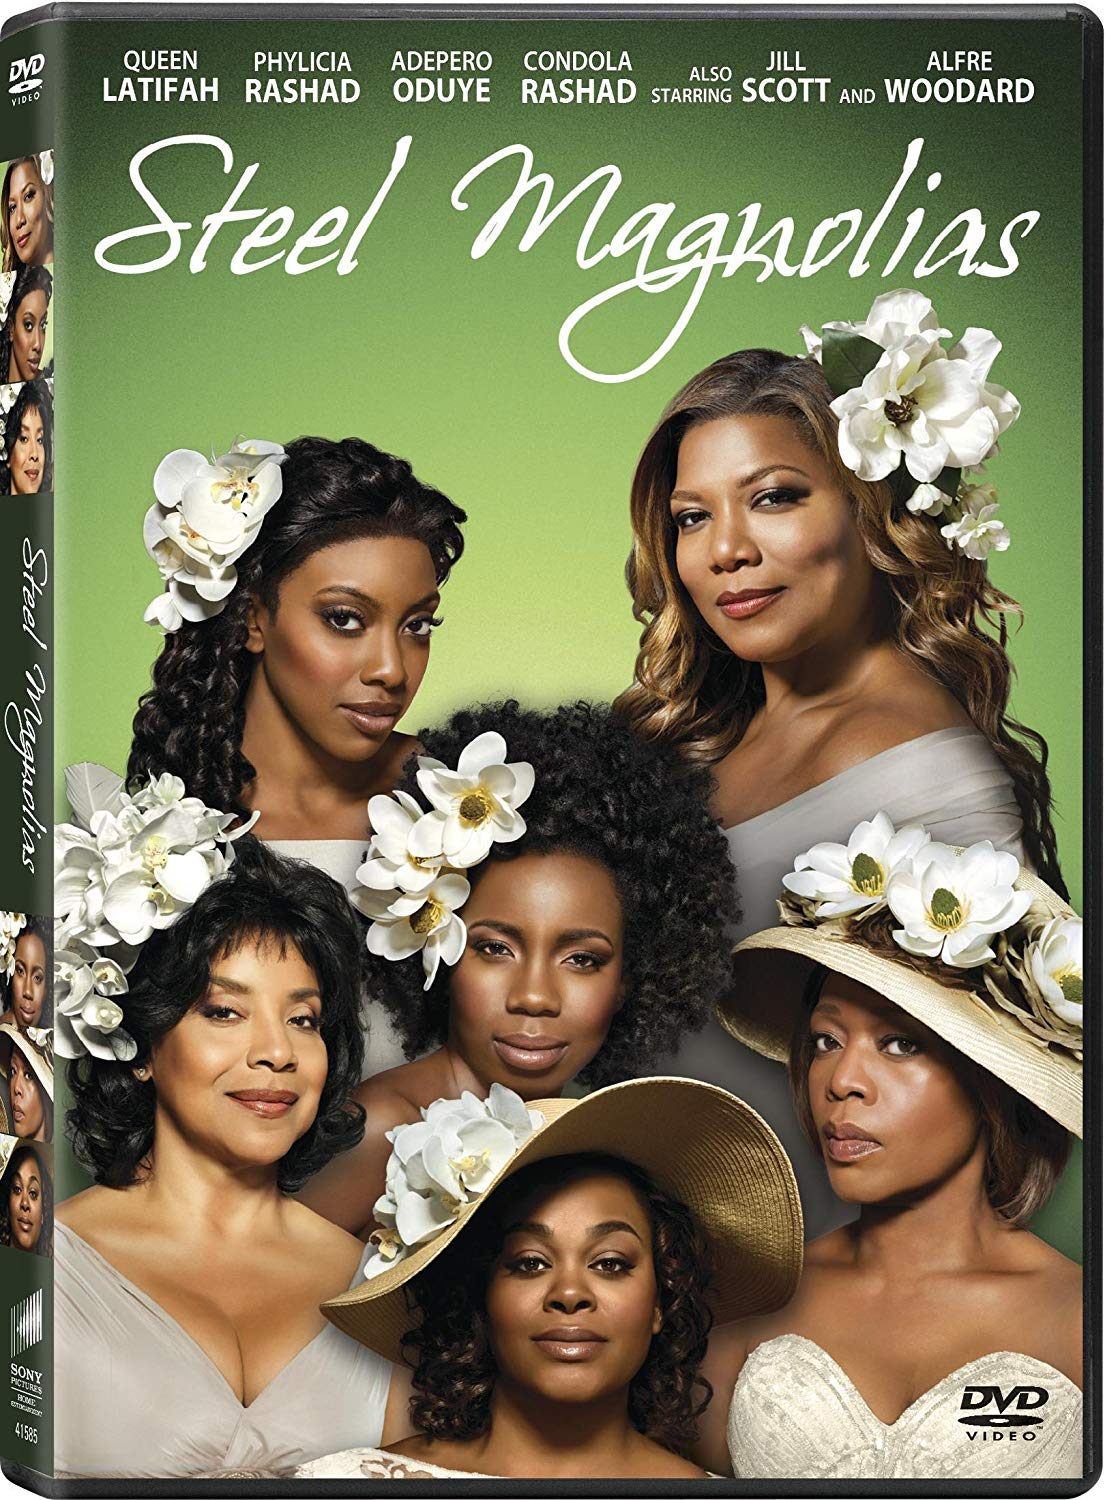 9 Facts About 'Steel Magnolias' - Simplemost